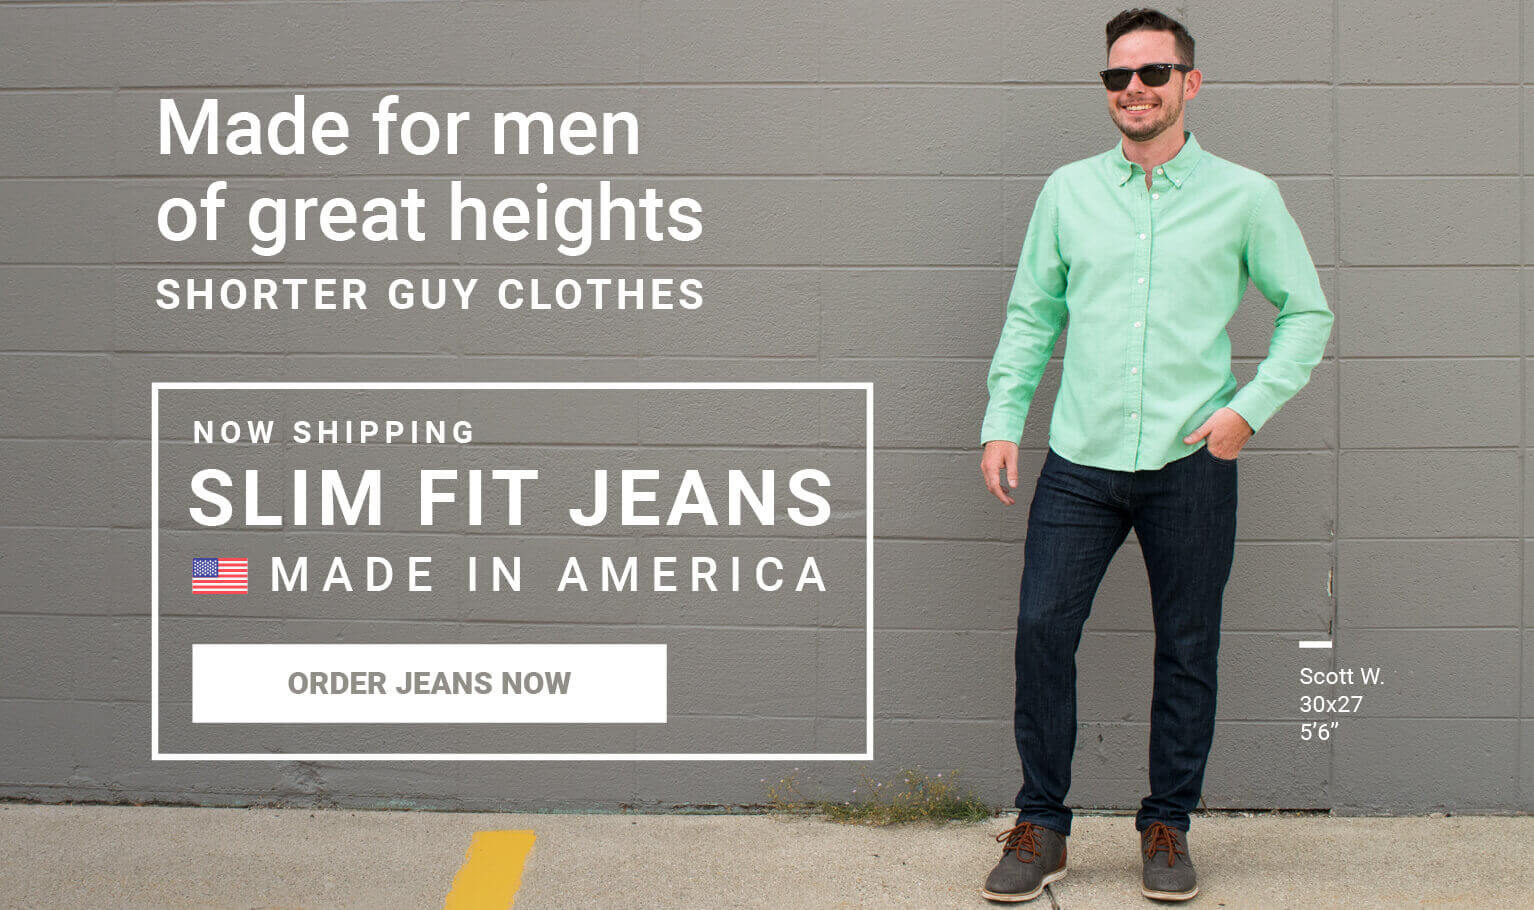 Made for men of great heights. Shorter Guy Clothes. Introducing the new premium Everyday Denim, Made in America. Order jeans now!